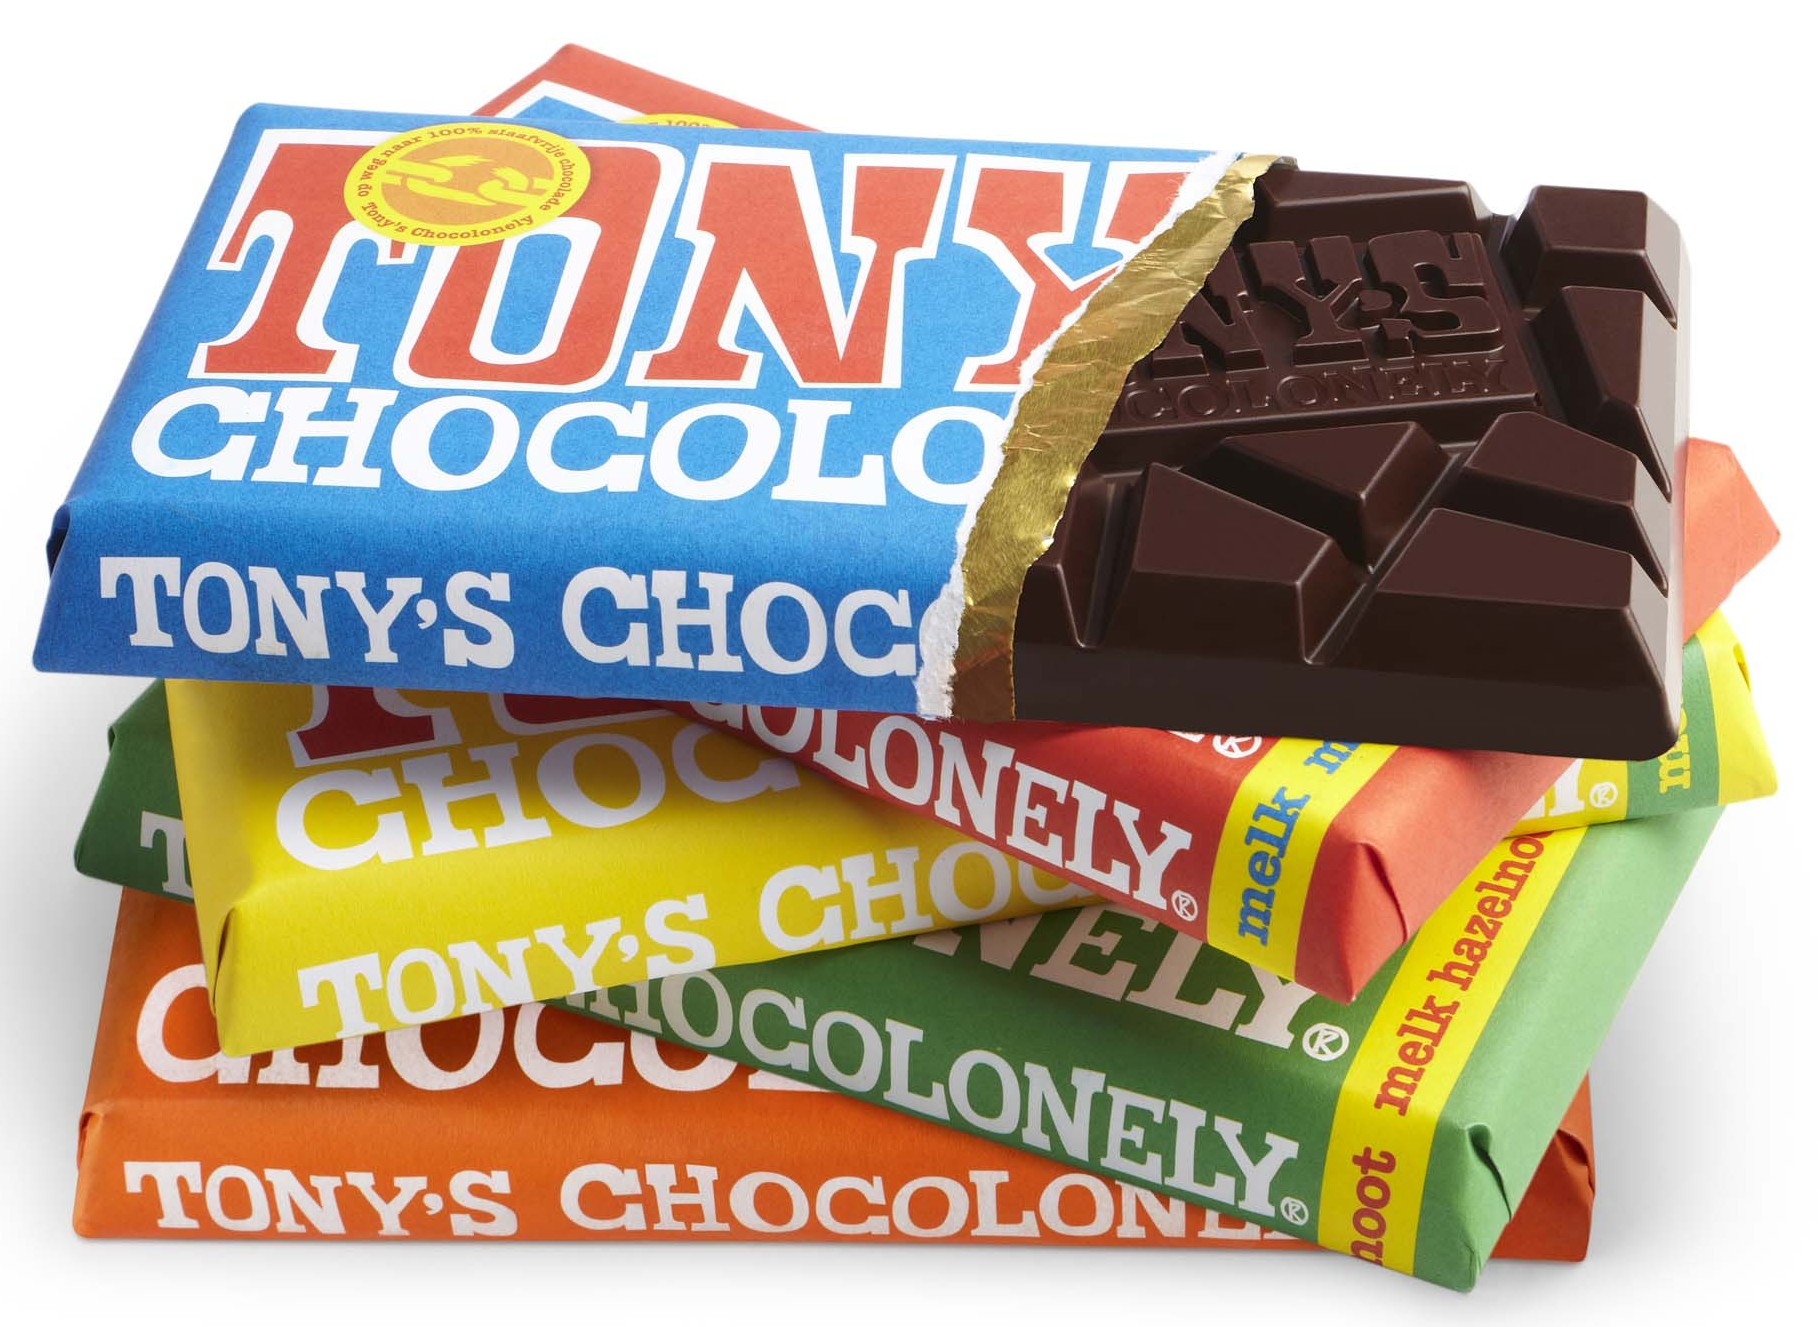 Belgian investment family 'take minority stake' in Tony's Chocolonely - DutchNews.nl